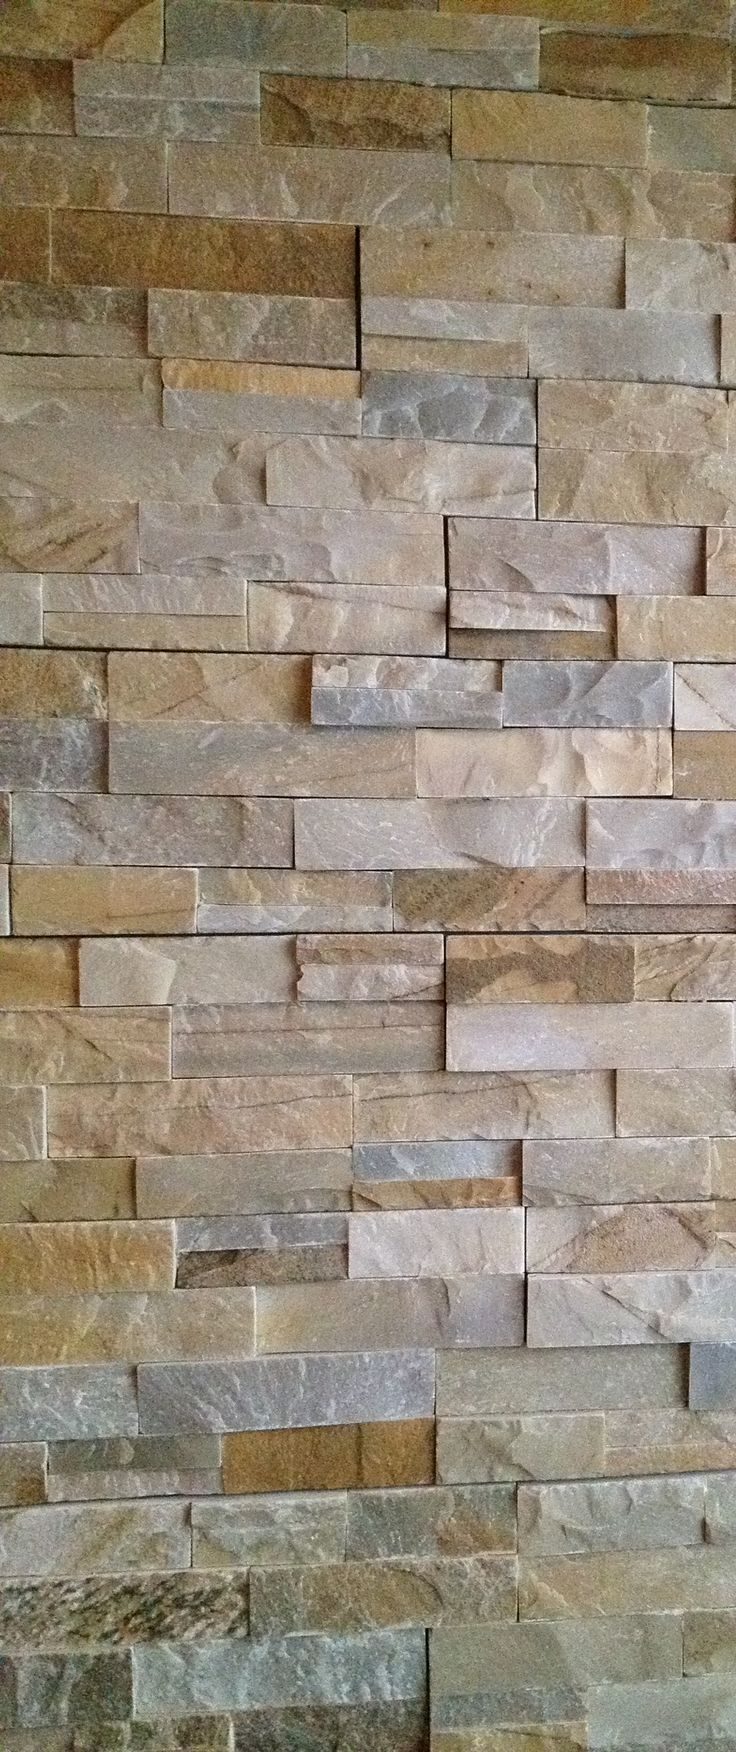 Desert Quartz Ledgestone Natural Stone Wall Tile (6x14) $3.98 Part 94